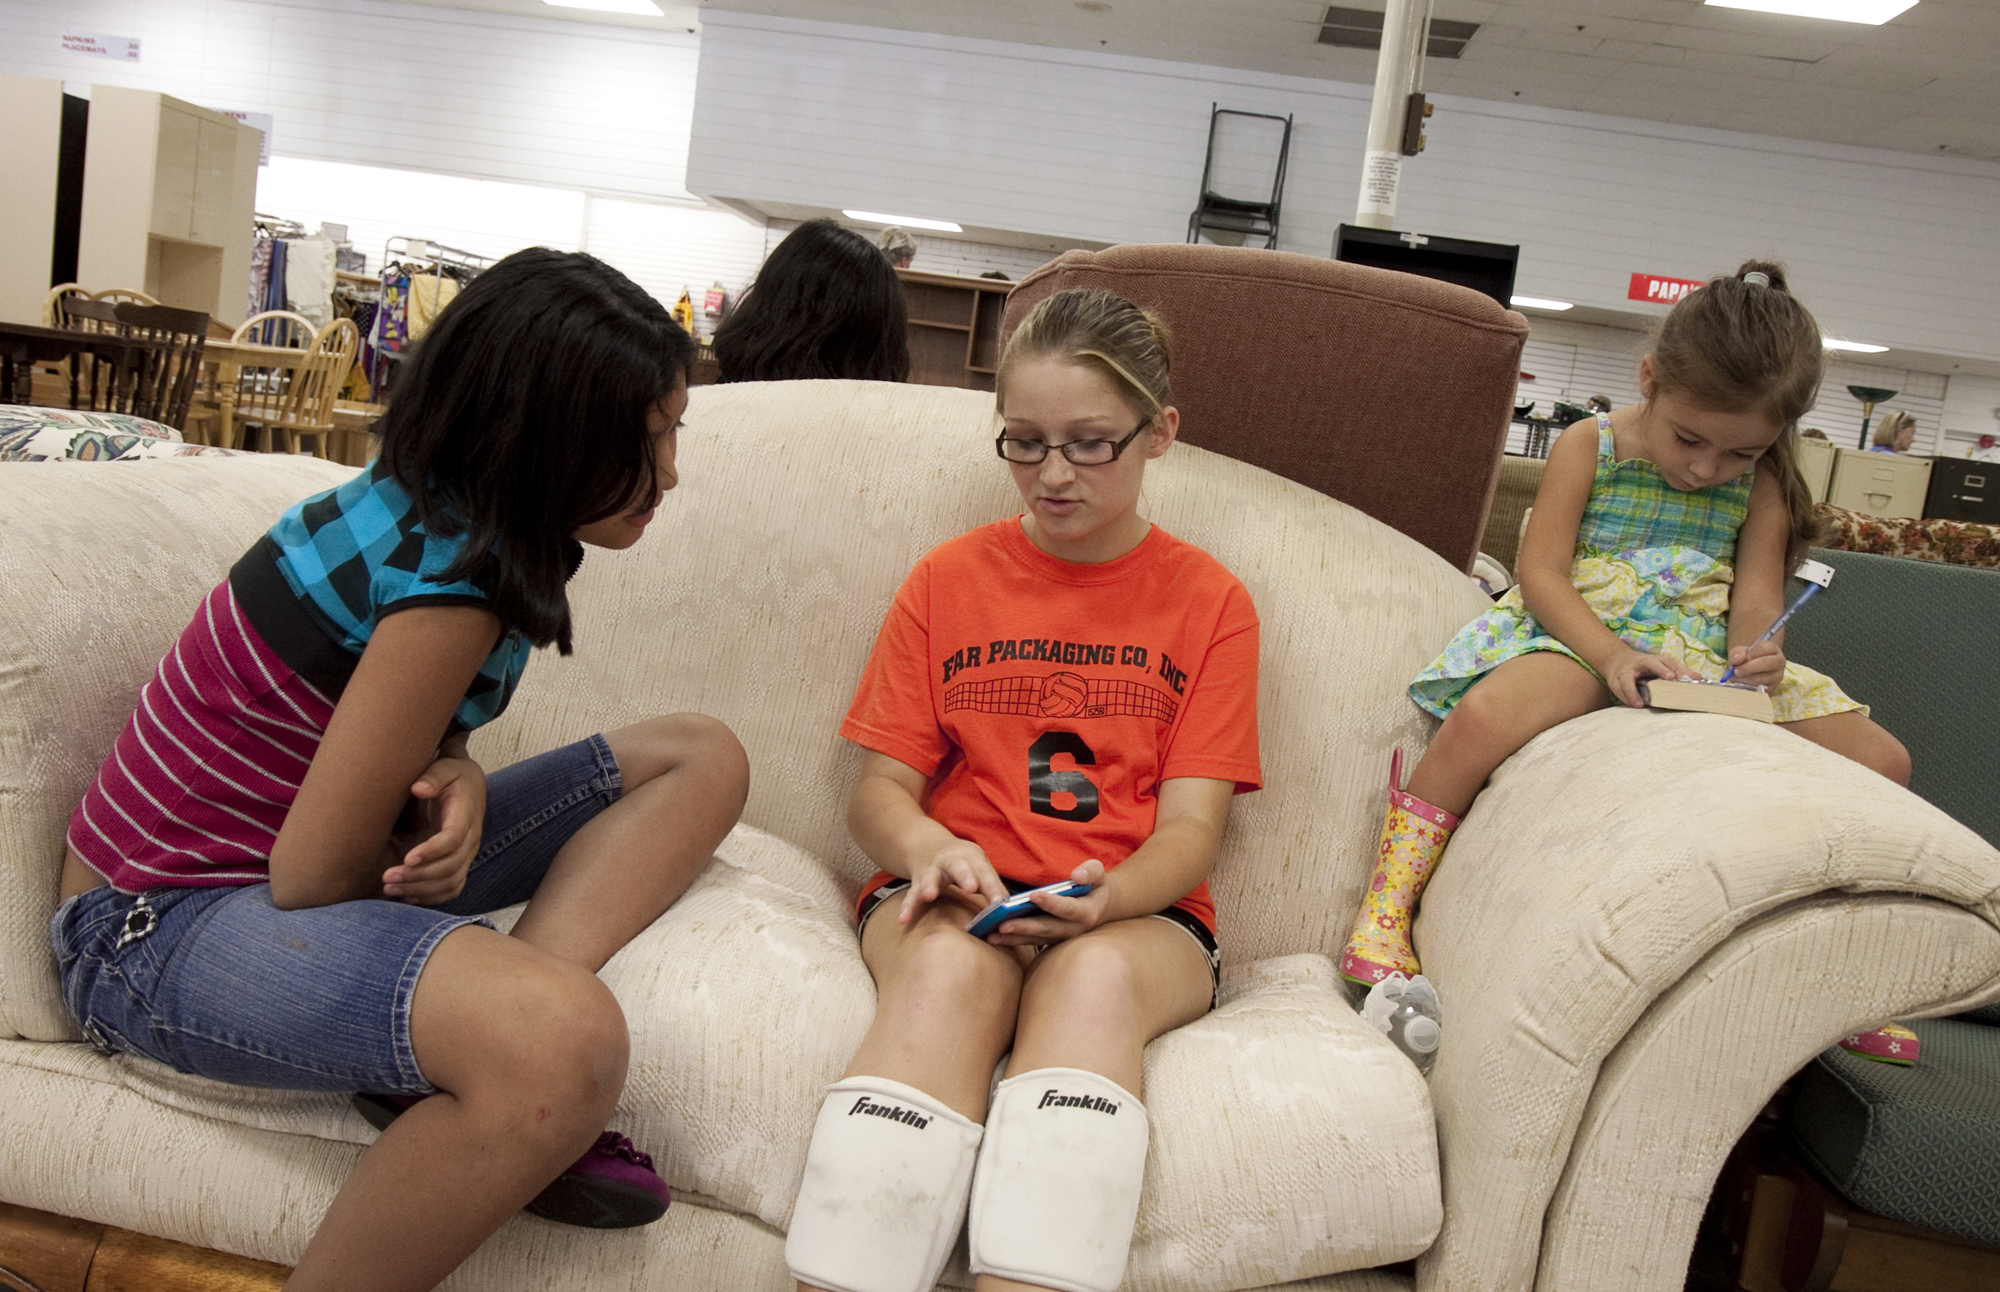 Yoisy Ordonez, 11, Alexis McLeod, 11, and Cira Smale, 4, wait for their parents to finish shopping in Guardian Angel Thrift Store, a reused Harris Teeter in Fuquay-Varina, N.C. Harris Teeter abandoned this location to move one mile up the road to a newer shopping center.